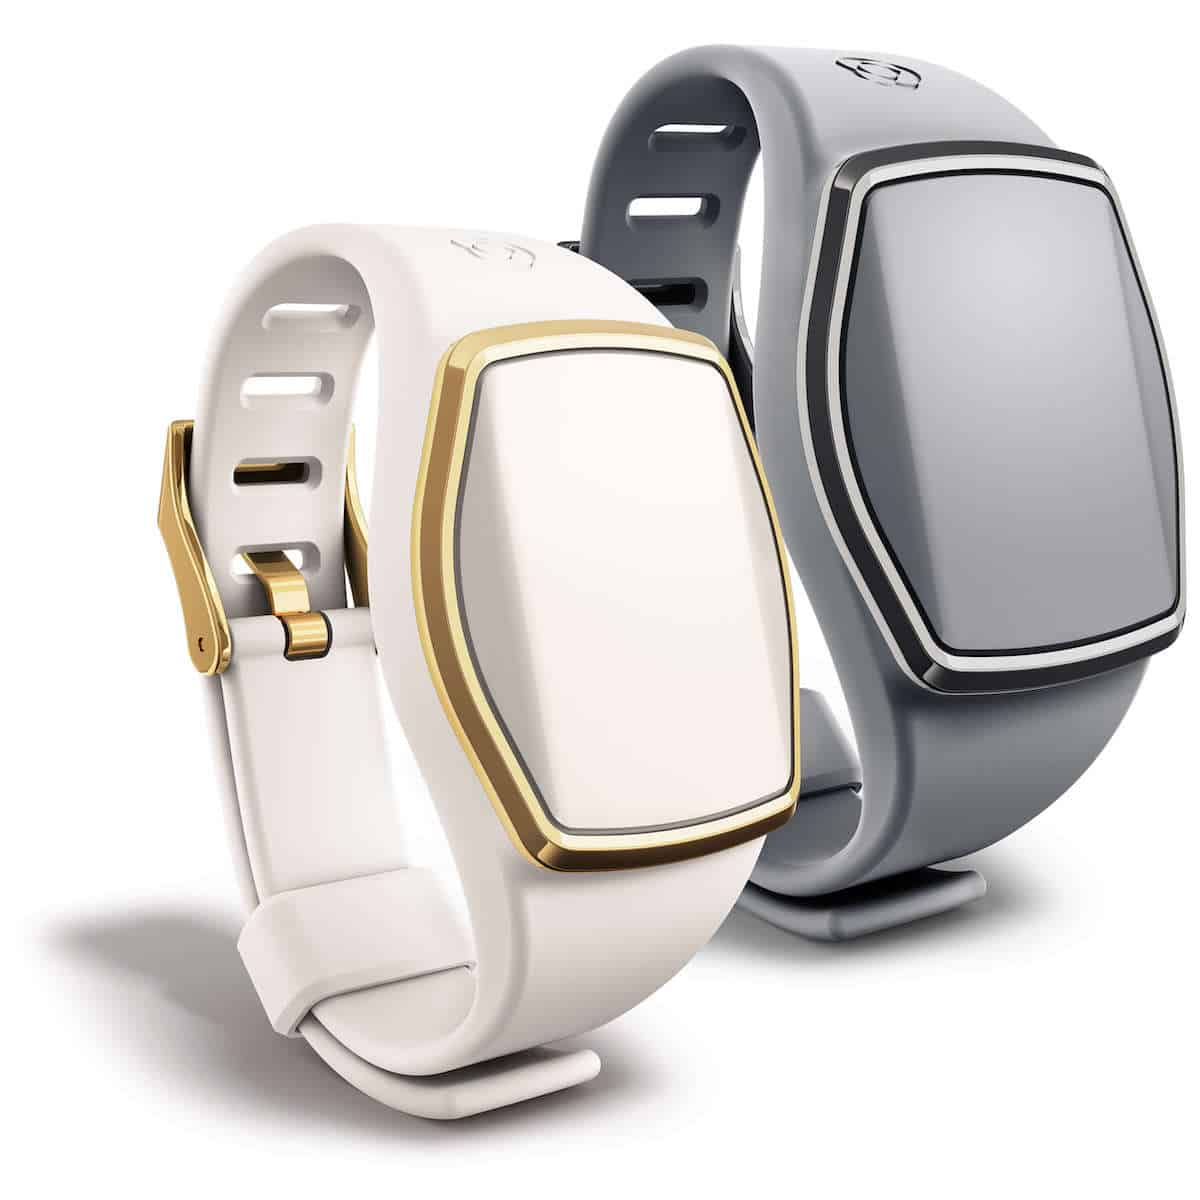 Medical Alert Devices - Greatcall lively alert watches